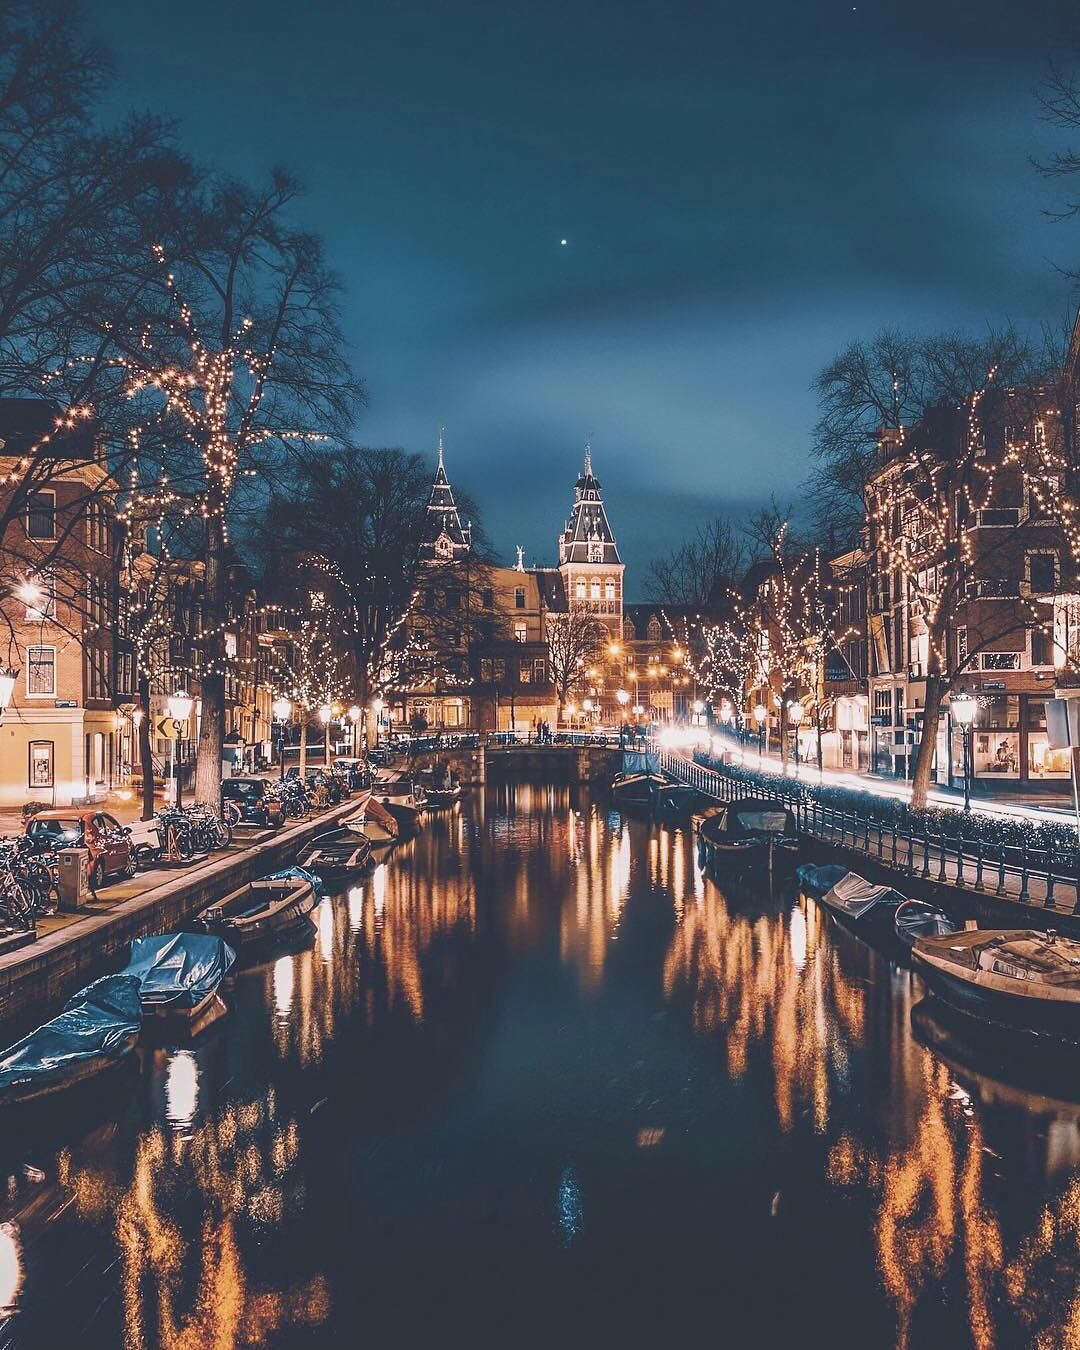 12 Christmas Themed Photo Ideas For Your Instagram Filtercrave Amsterdam Travel Wonderful Places Travel